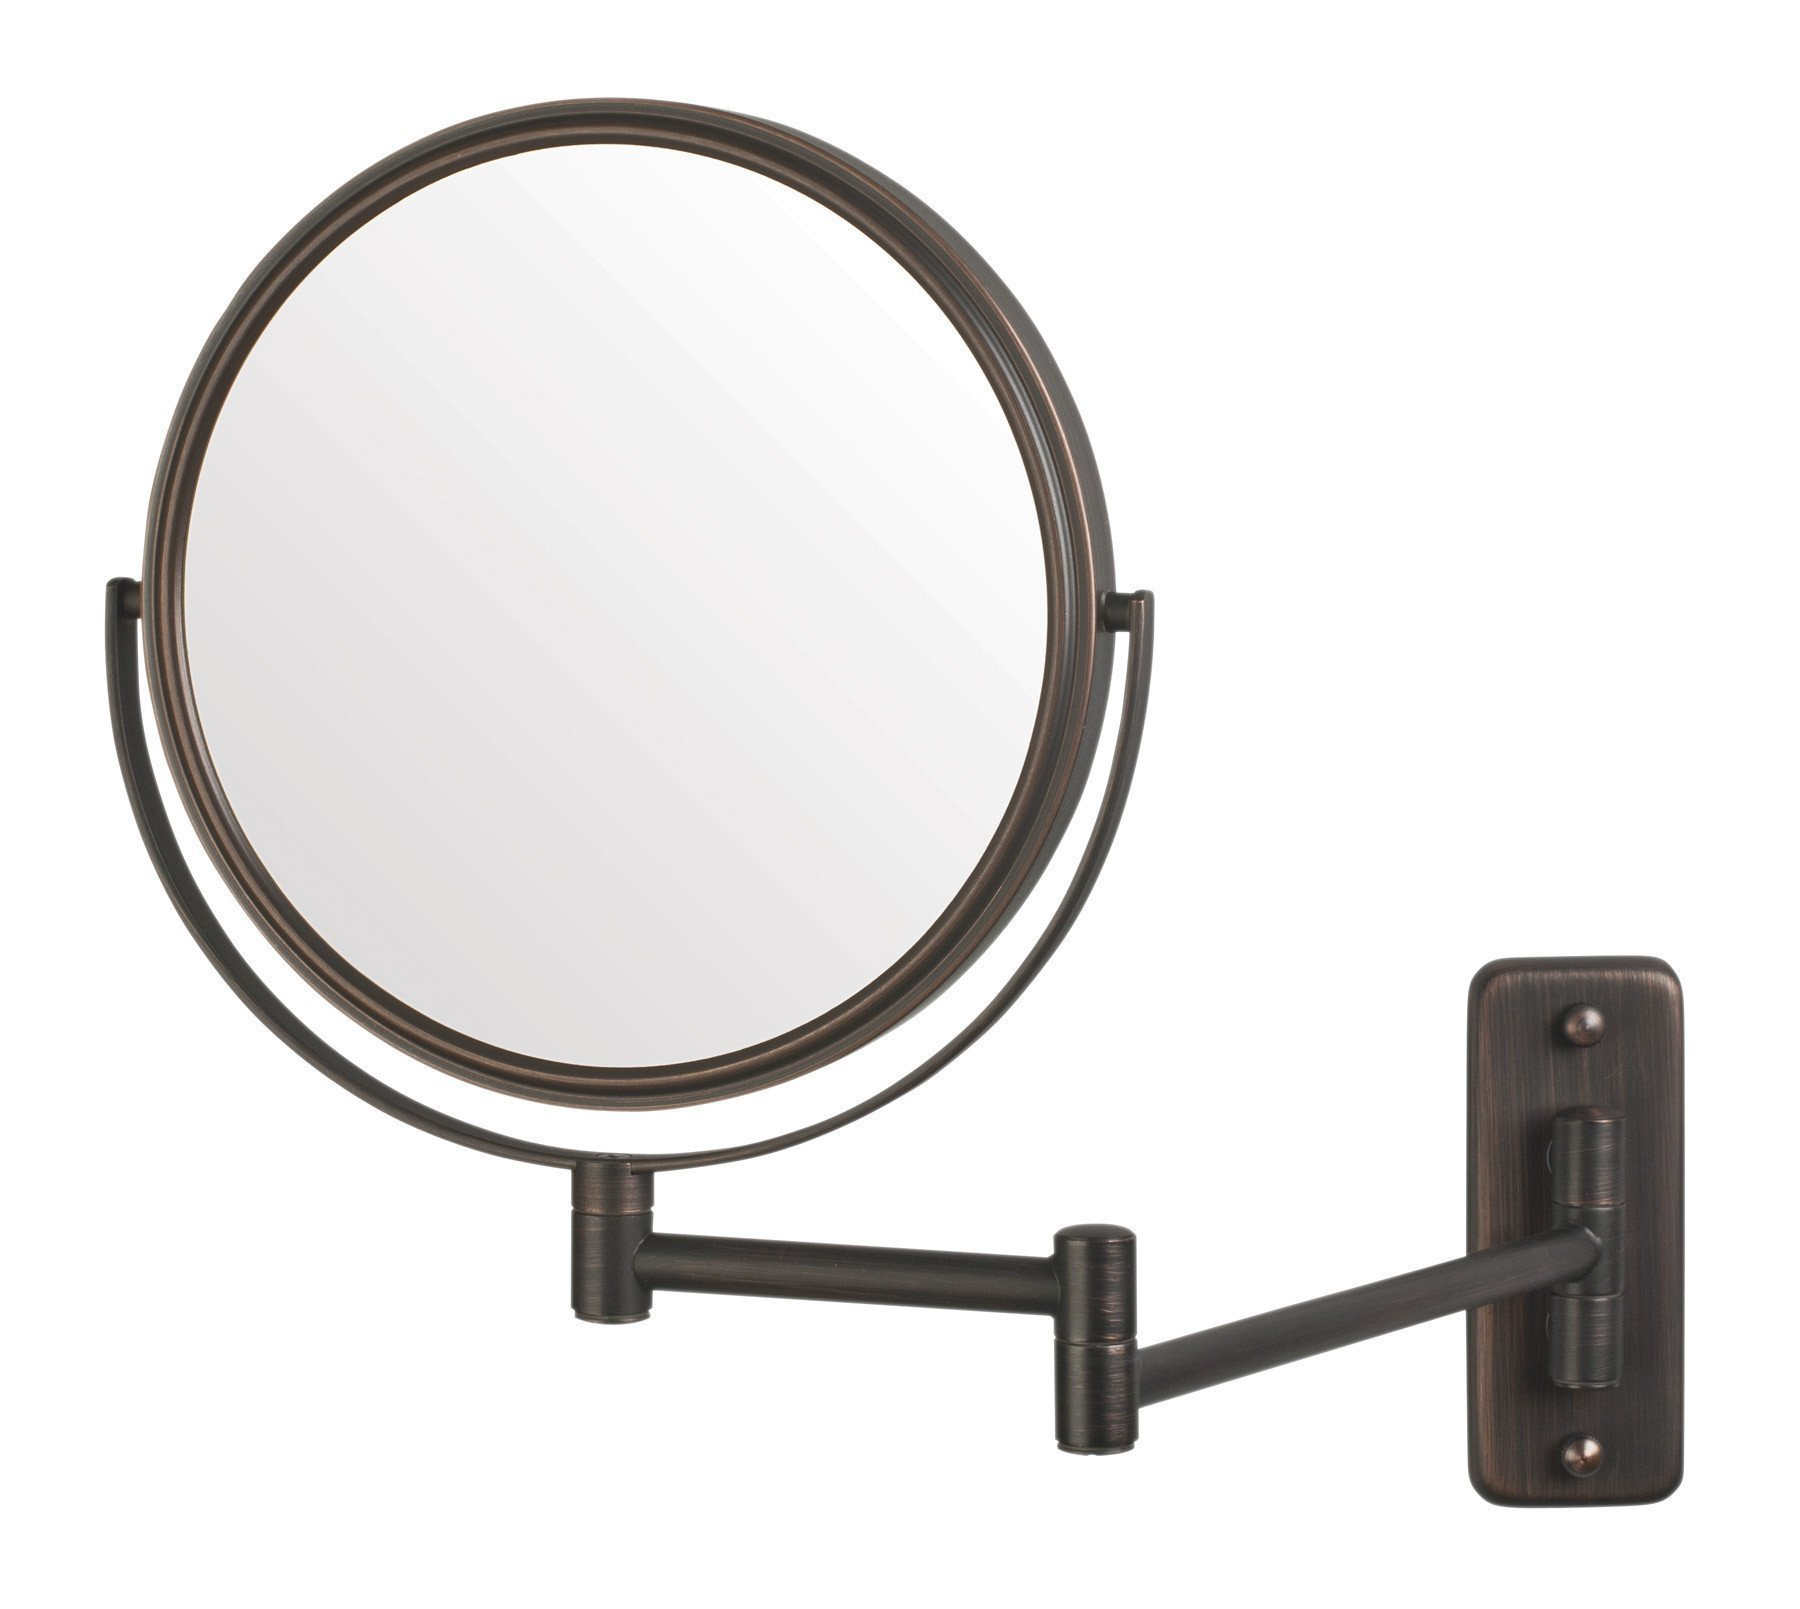 Jerdon JP7506BZ 8-Inch Wall Mount Makeup Mirror with 5x Magnification, Bronze Finish by Jerdon